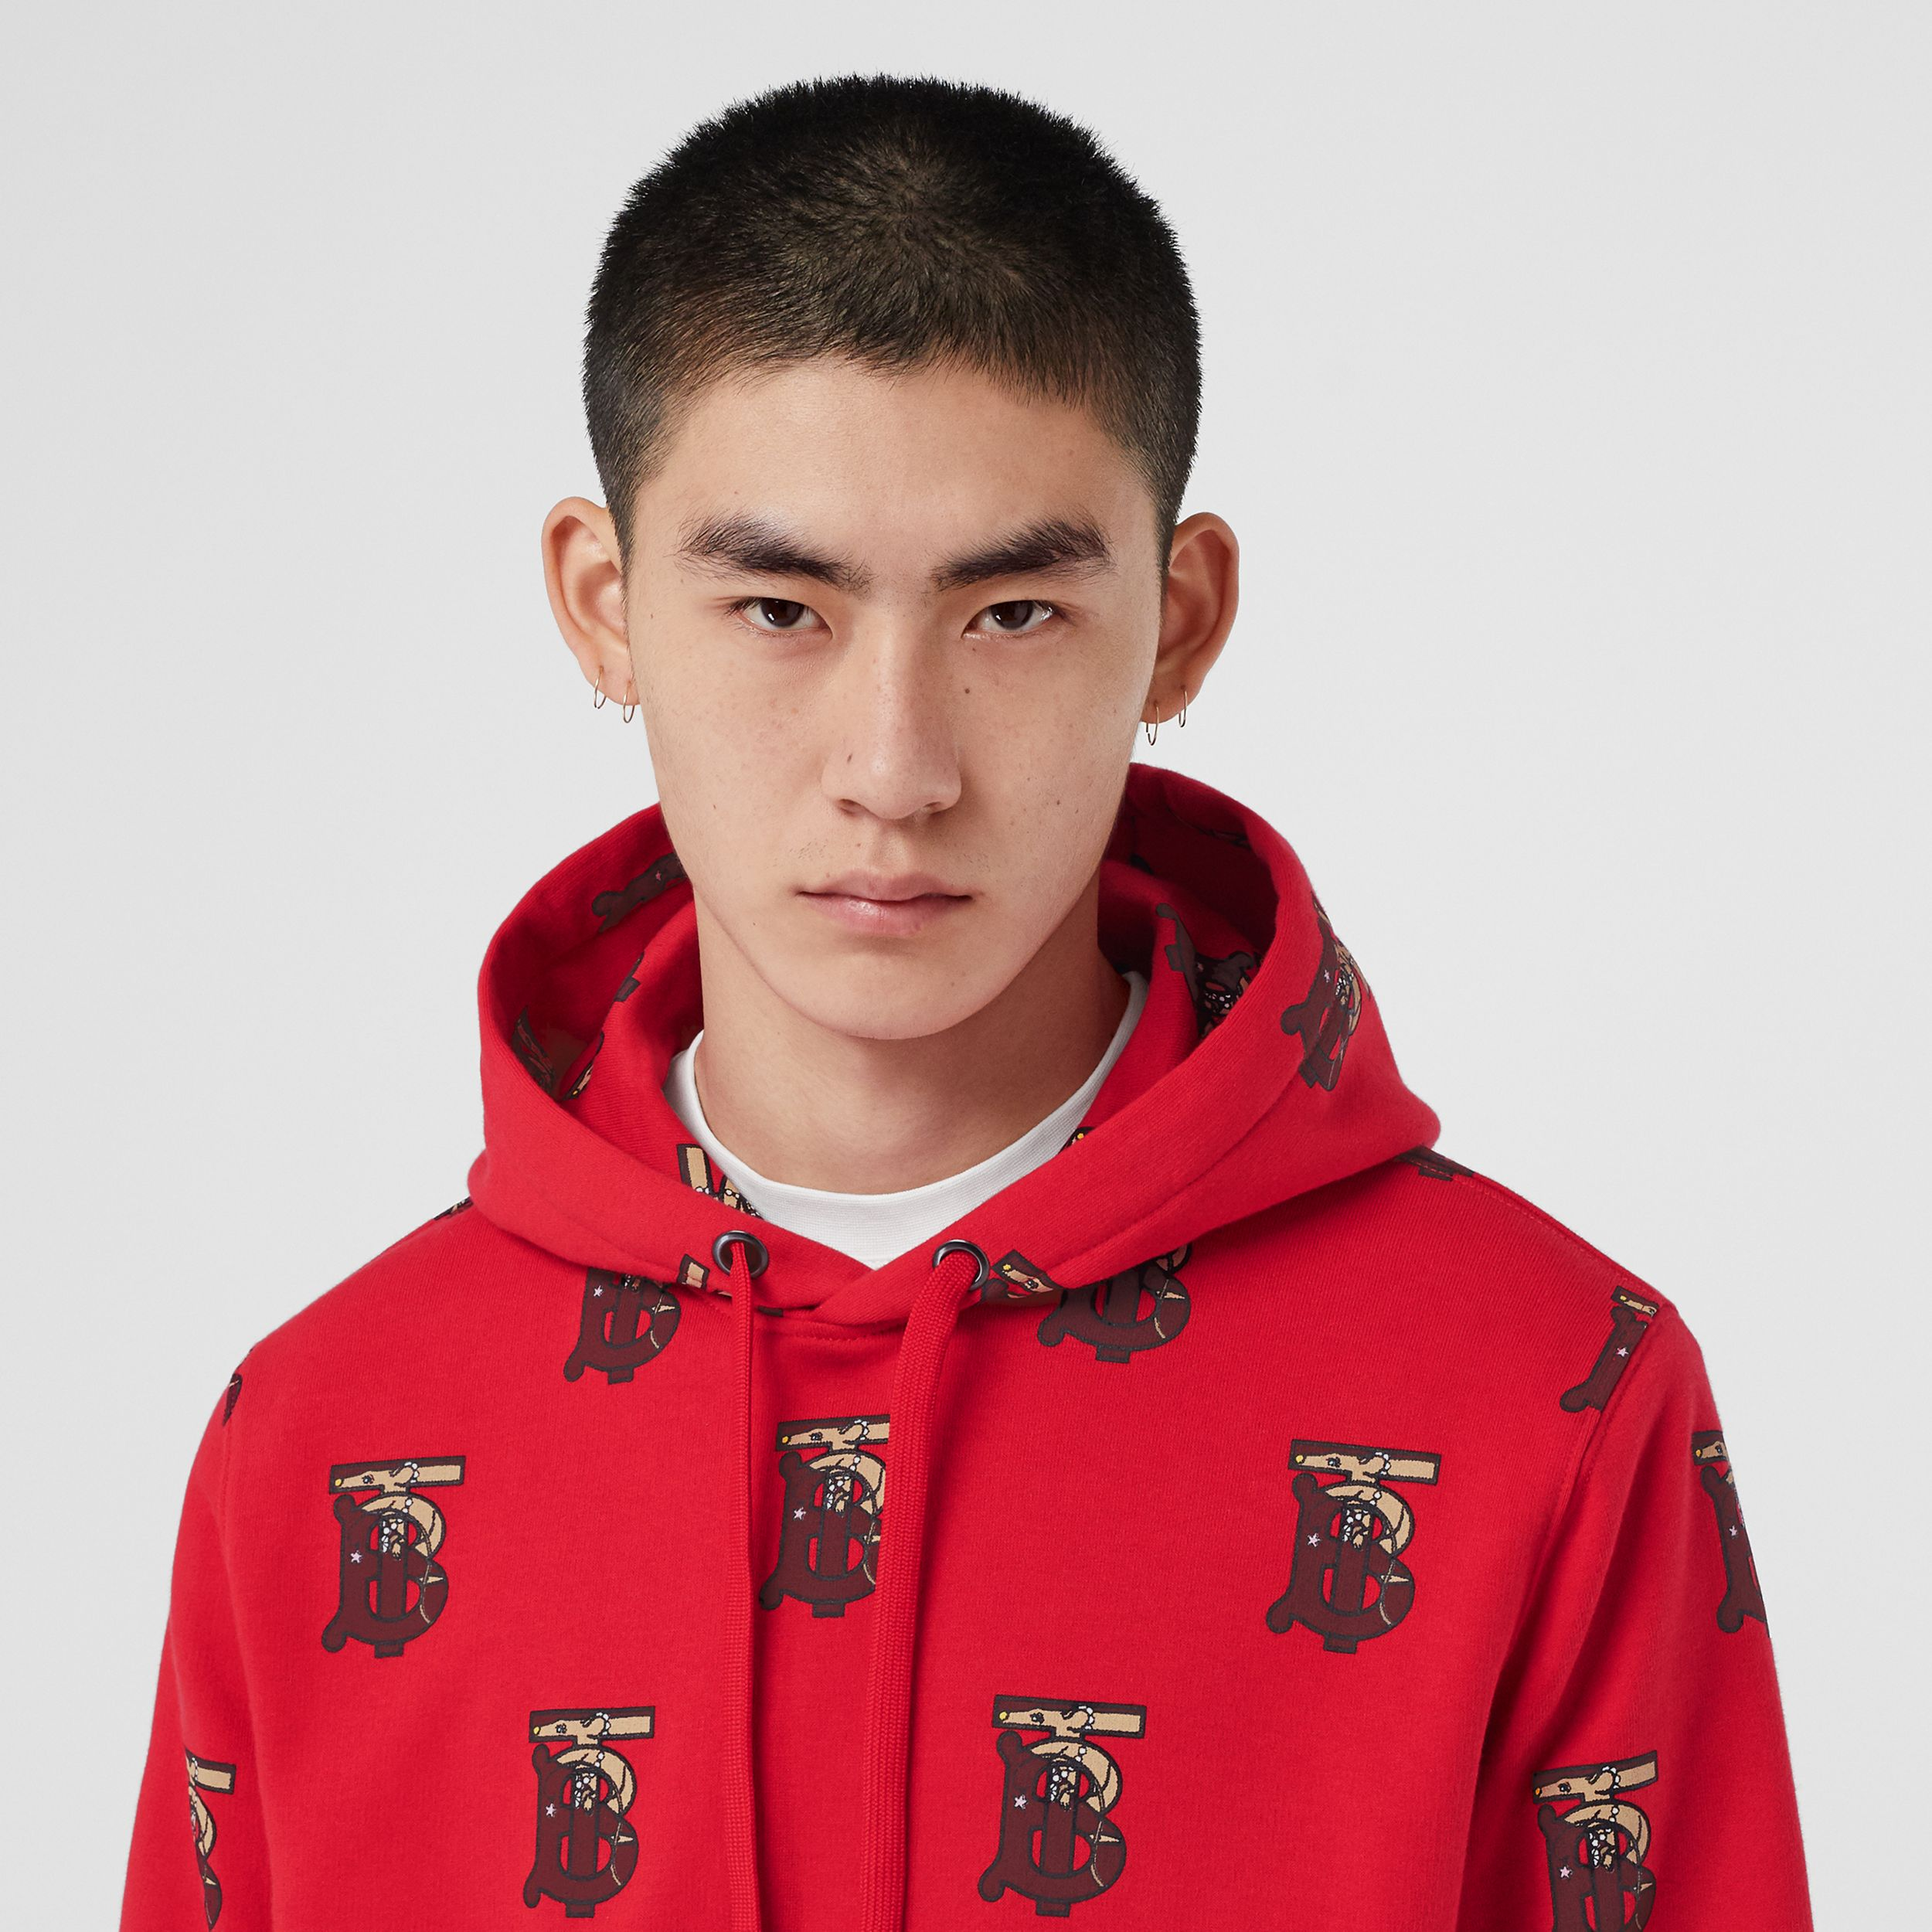 Monogram Motif Cotton Oversized Hoodie in Bright Red - Men | Burberry Canada - 2